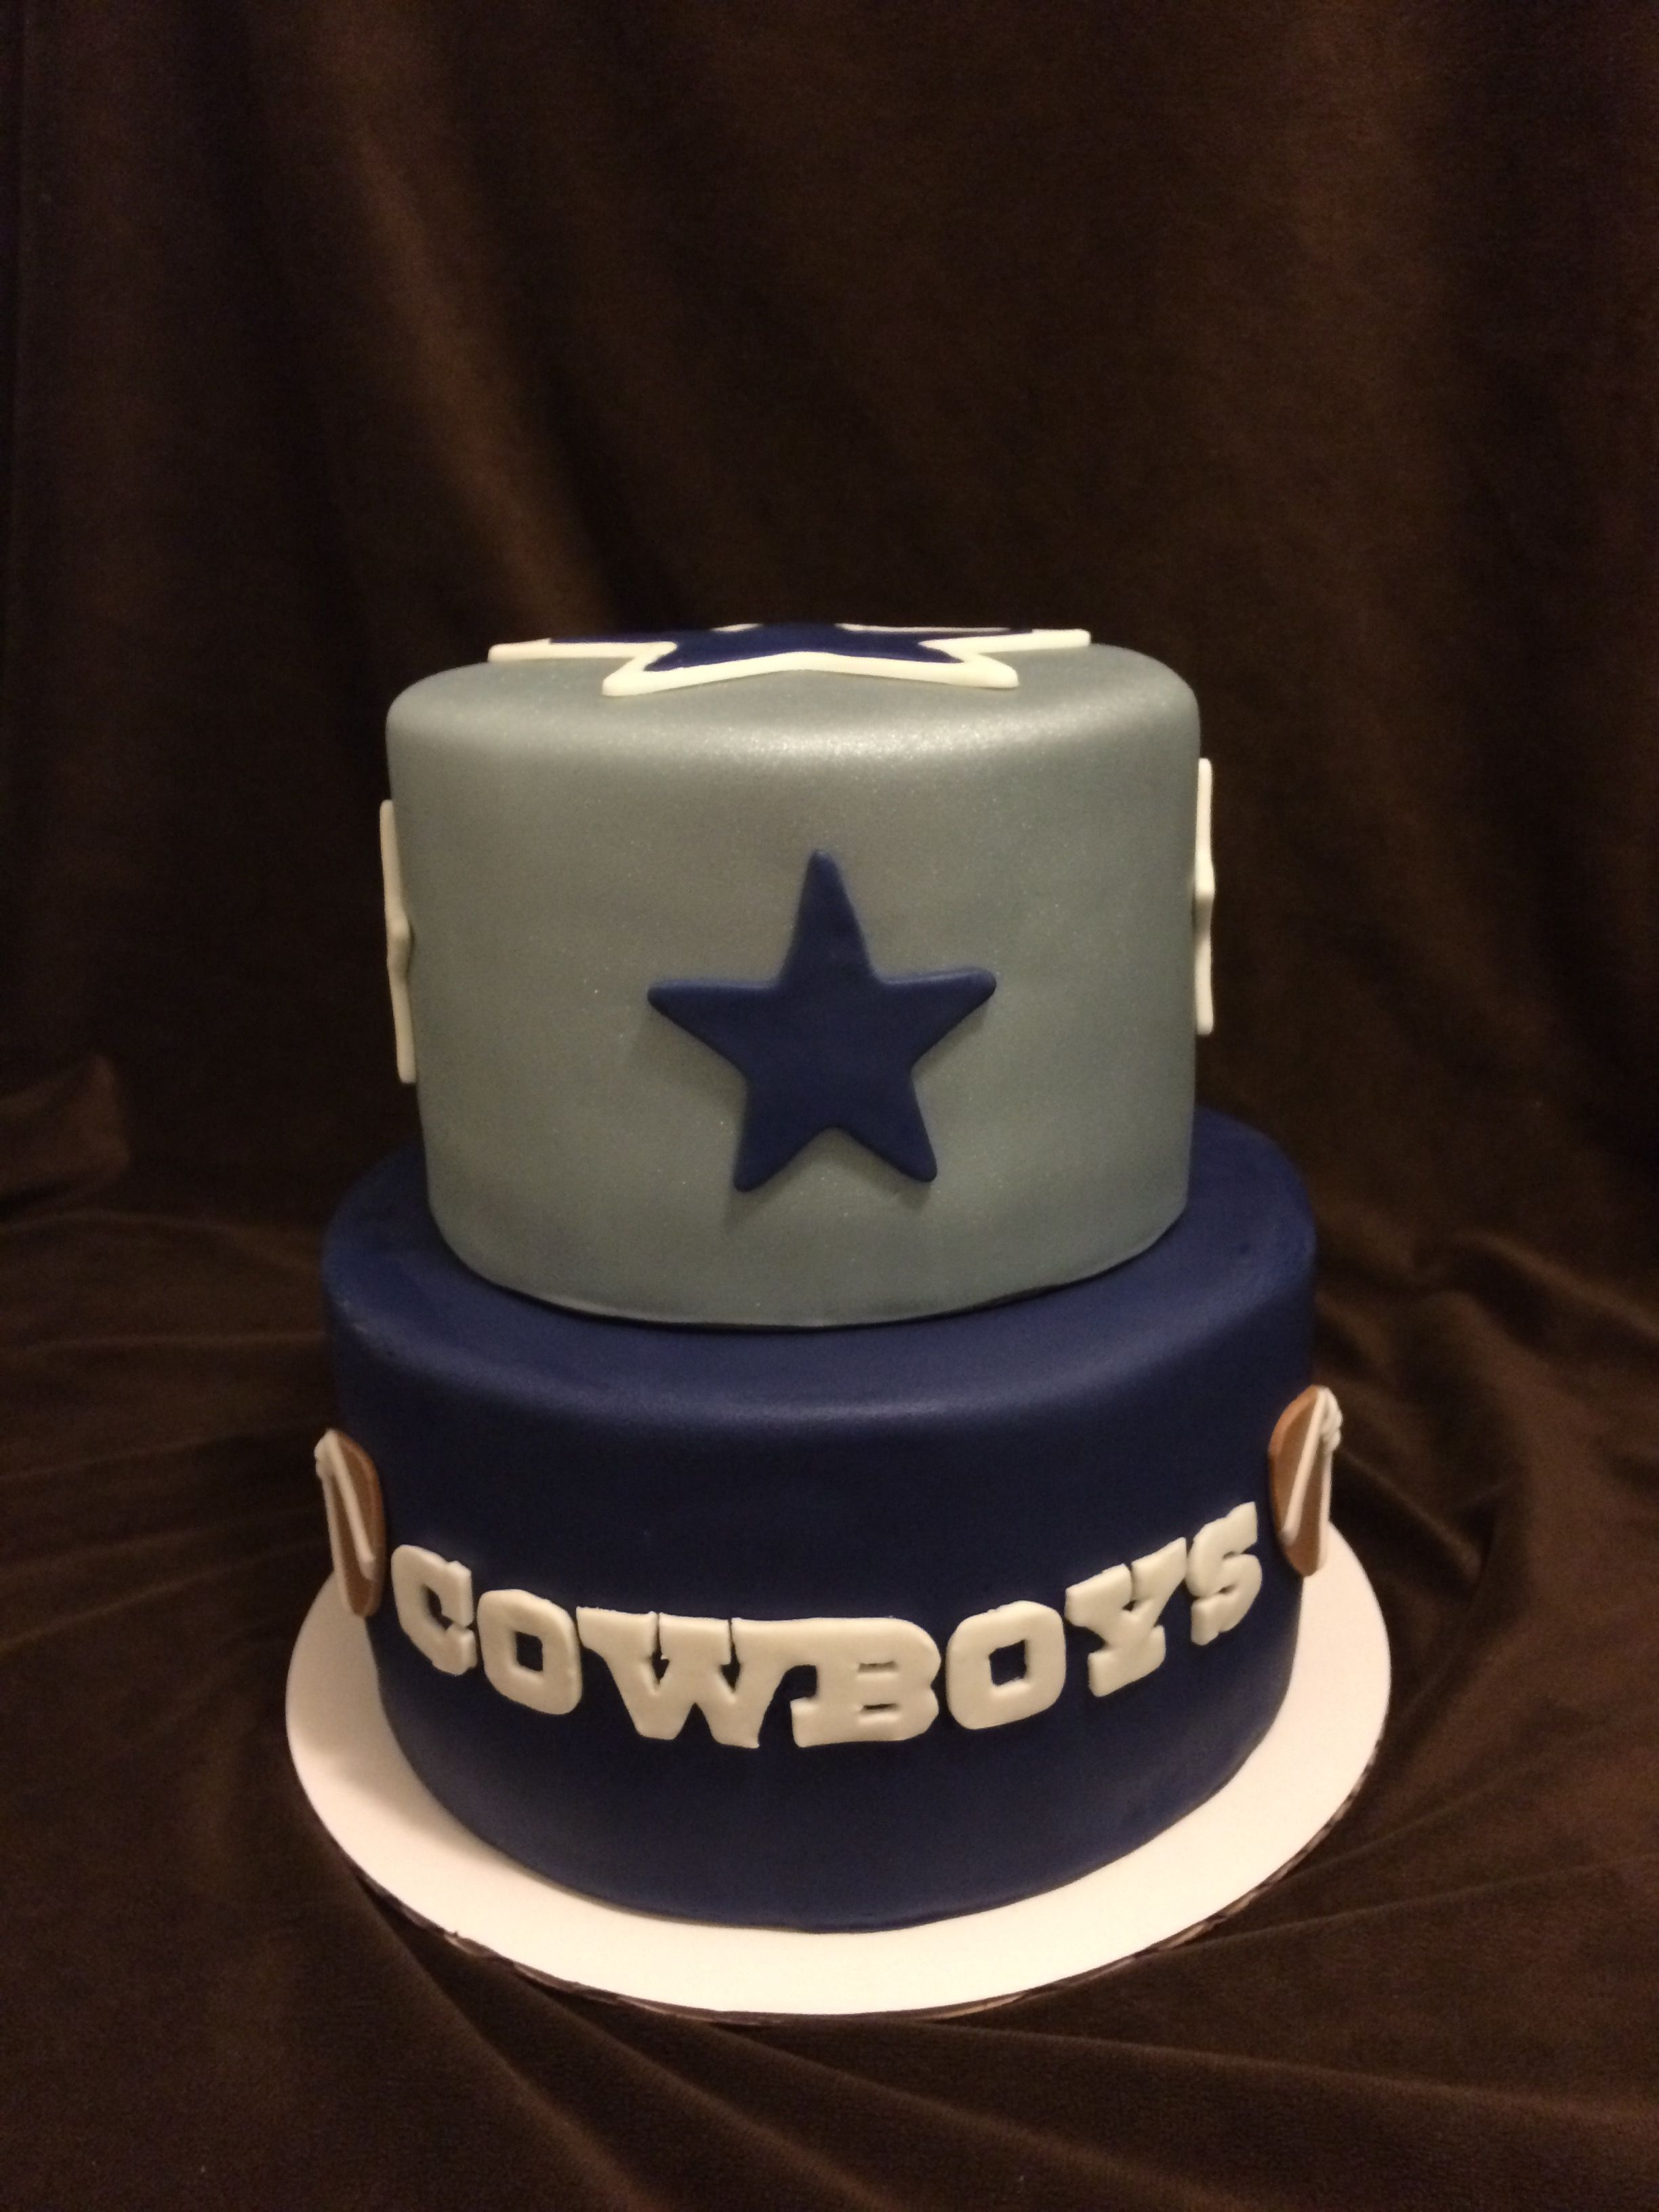 2 Tier Dallas Cowboys Cake Our Cakes Pinterest Dallas Cowboys